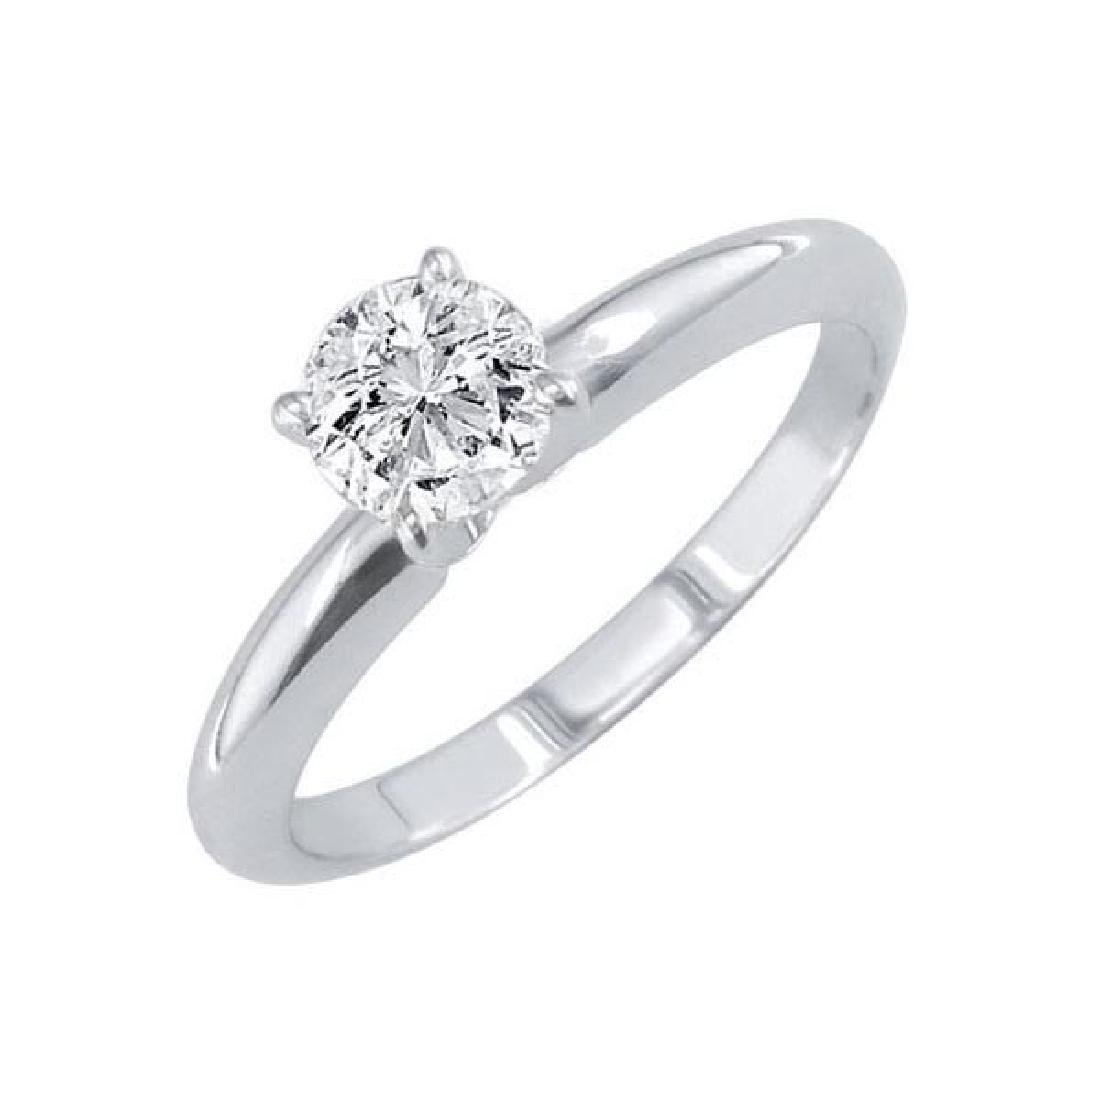 Certified 1.26 CTW Round Diamond Solitaire 14k Ring F/I